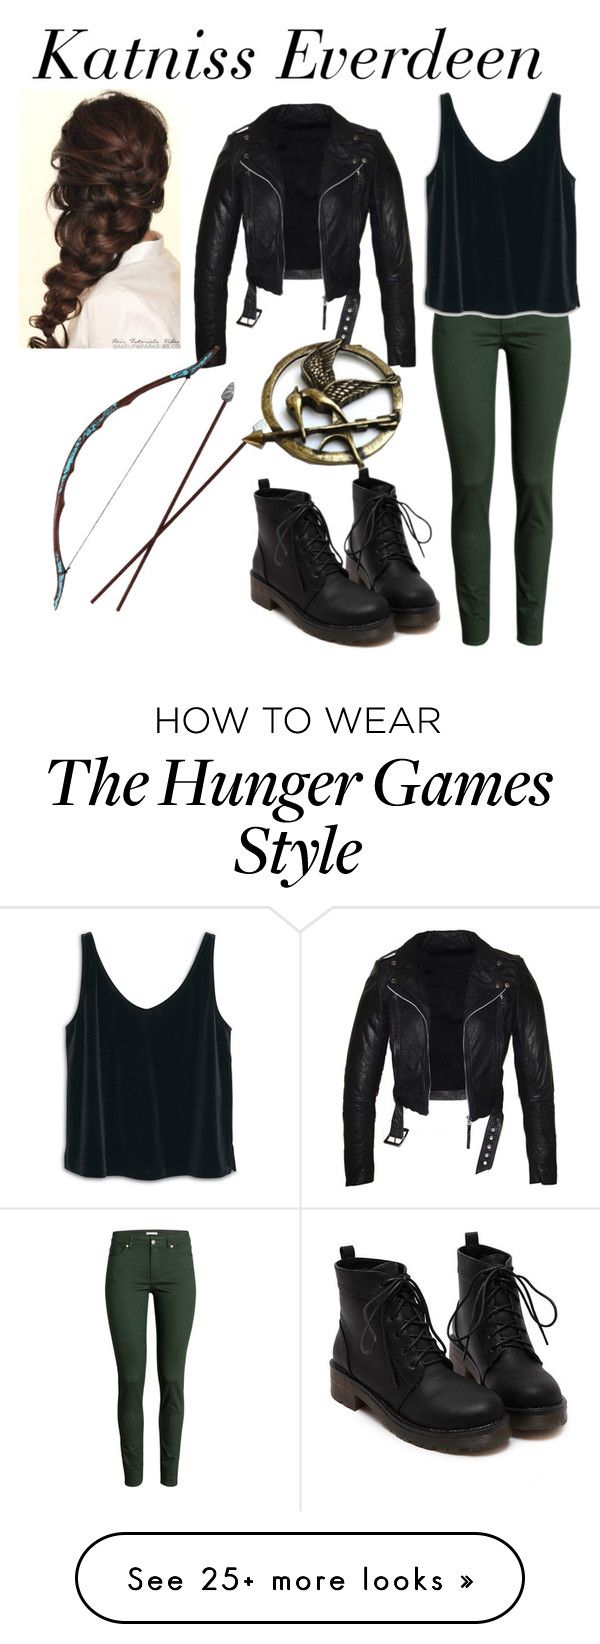 """""""Movies: Katniss Everdeen"""" by samantha-3112 on Polyvore featuring H&M, MANGO, Disney, Hungergames and katniss"""